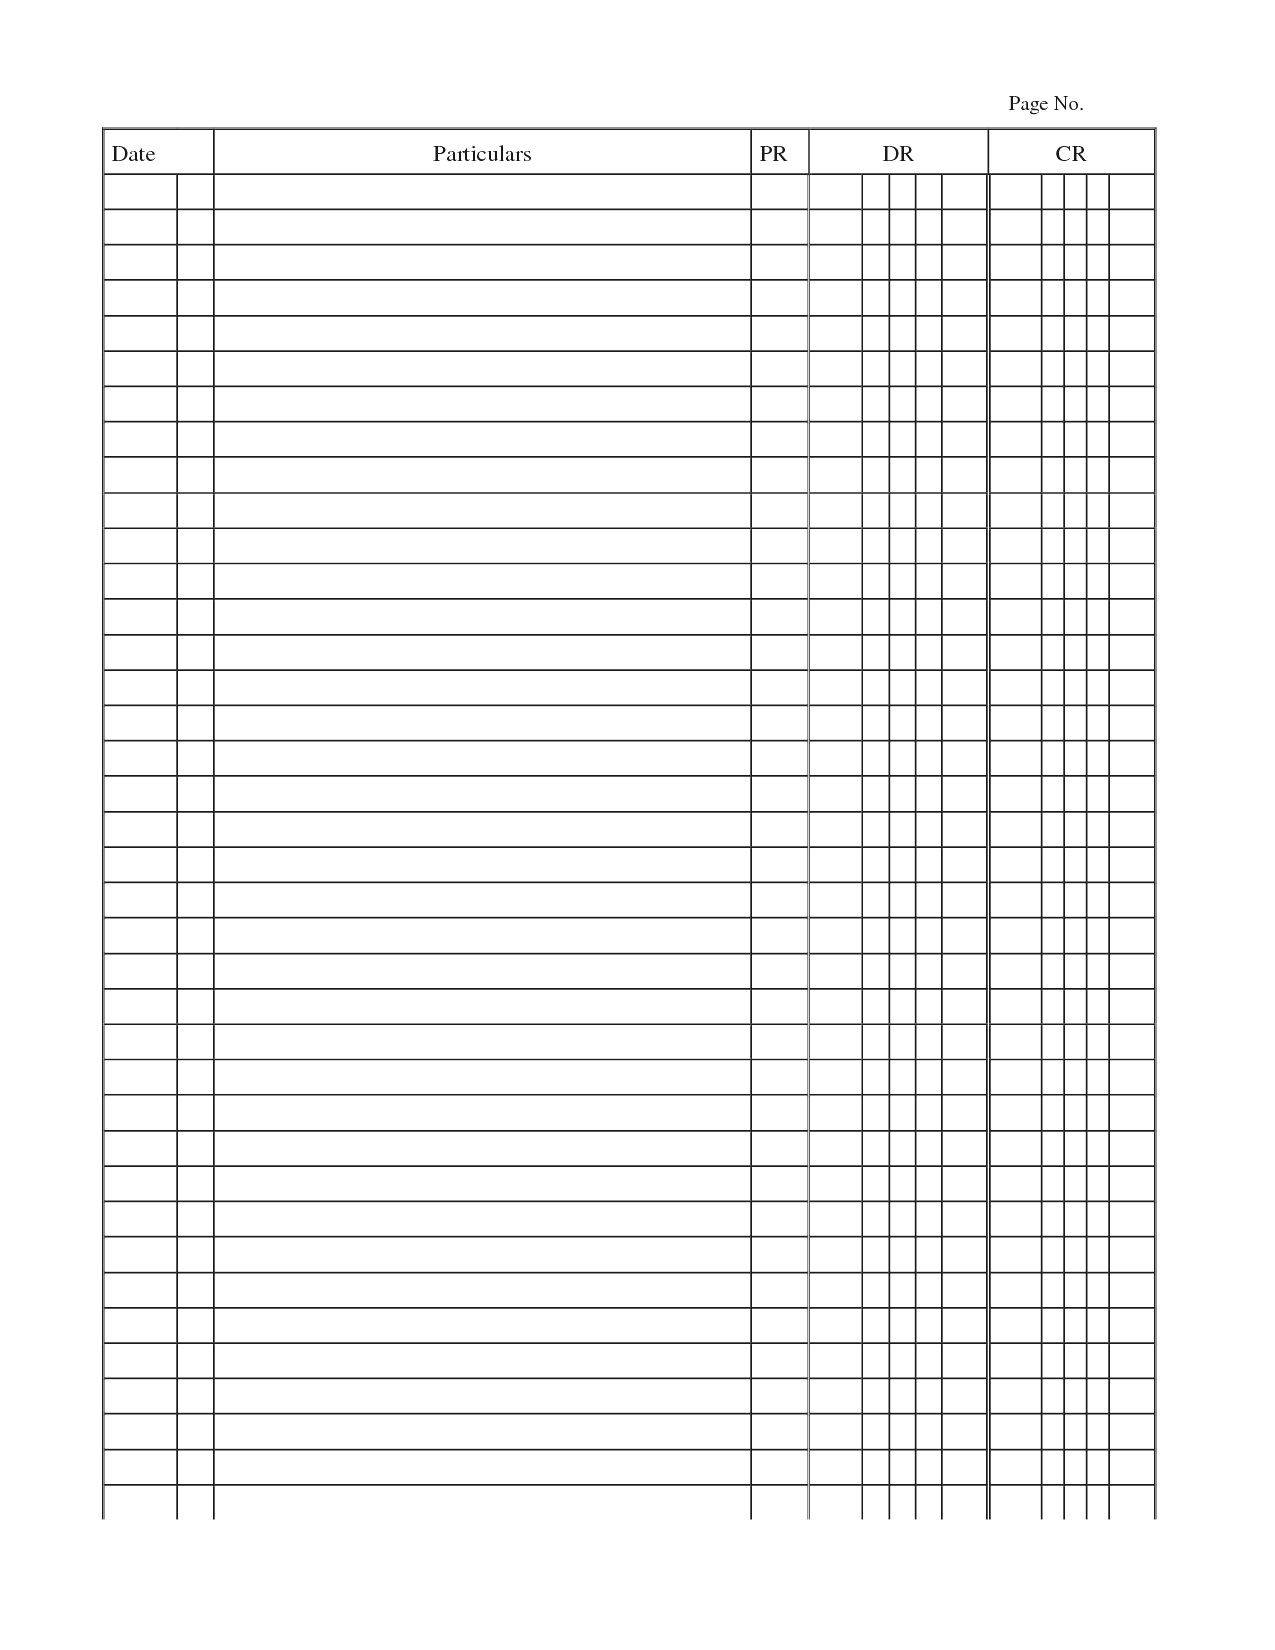 000 Impressive Accounting Journal Entry Template Highest Quality  Blank Download FreeFull